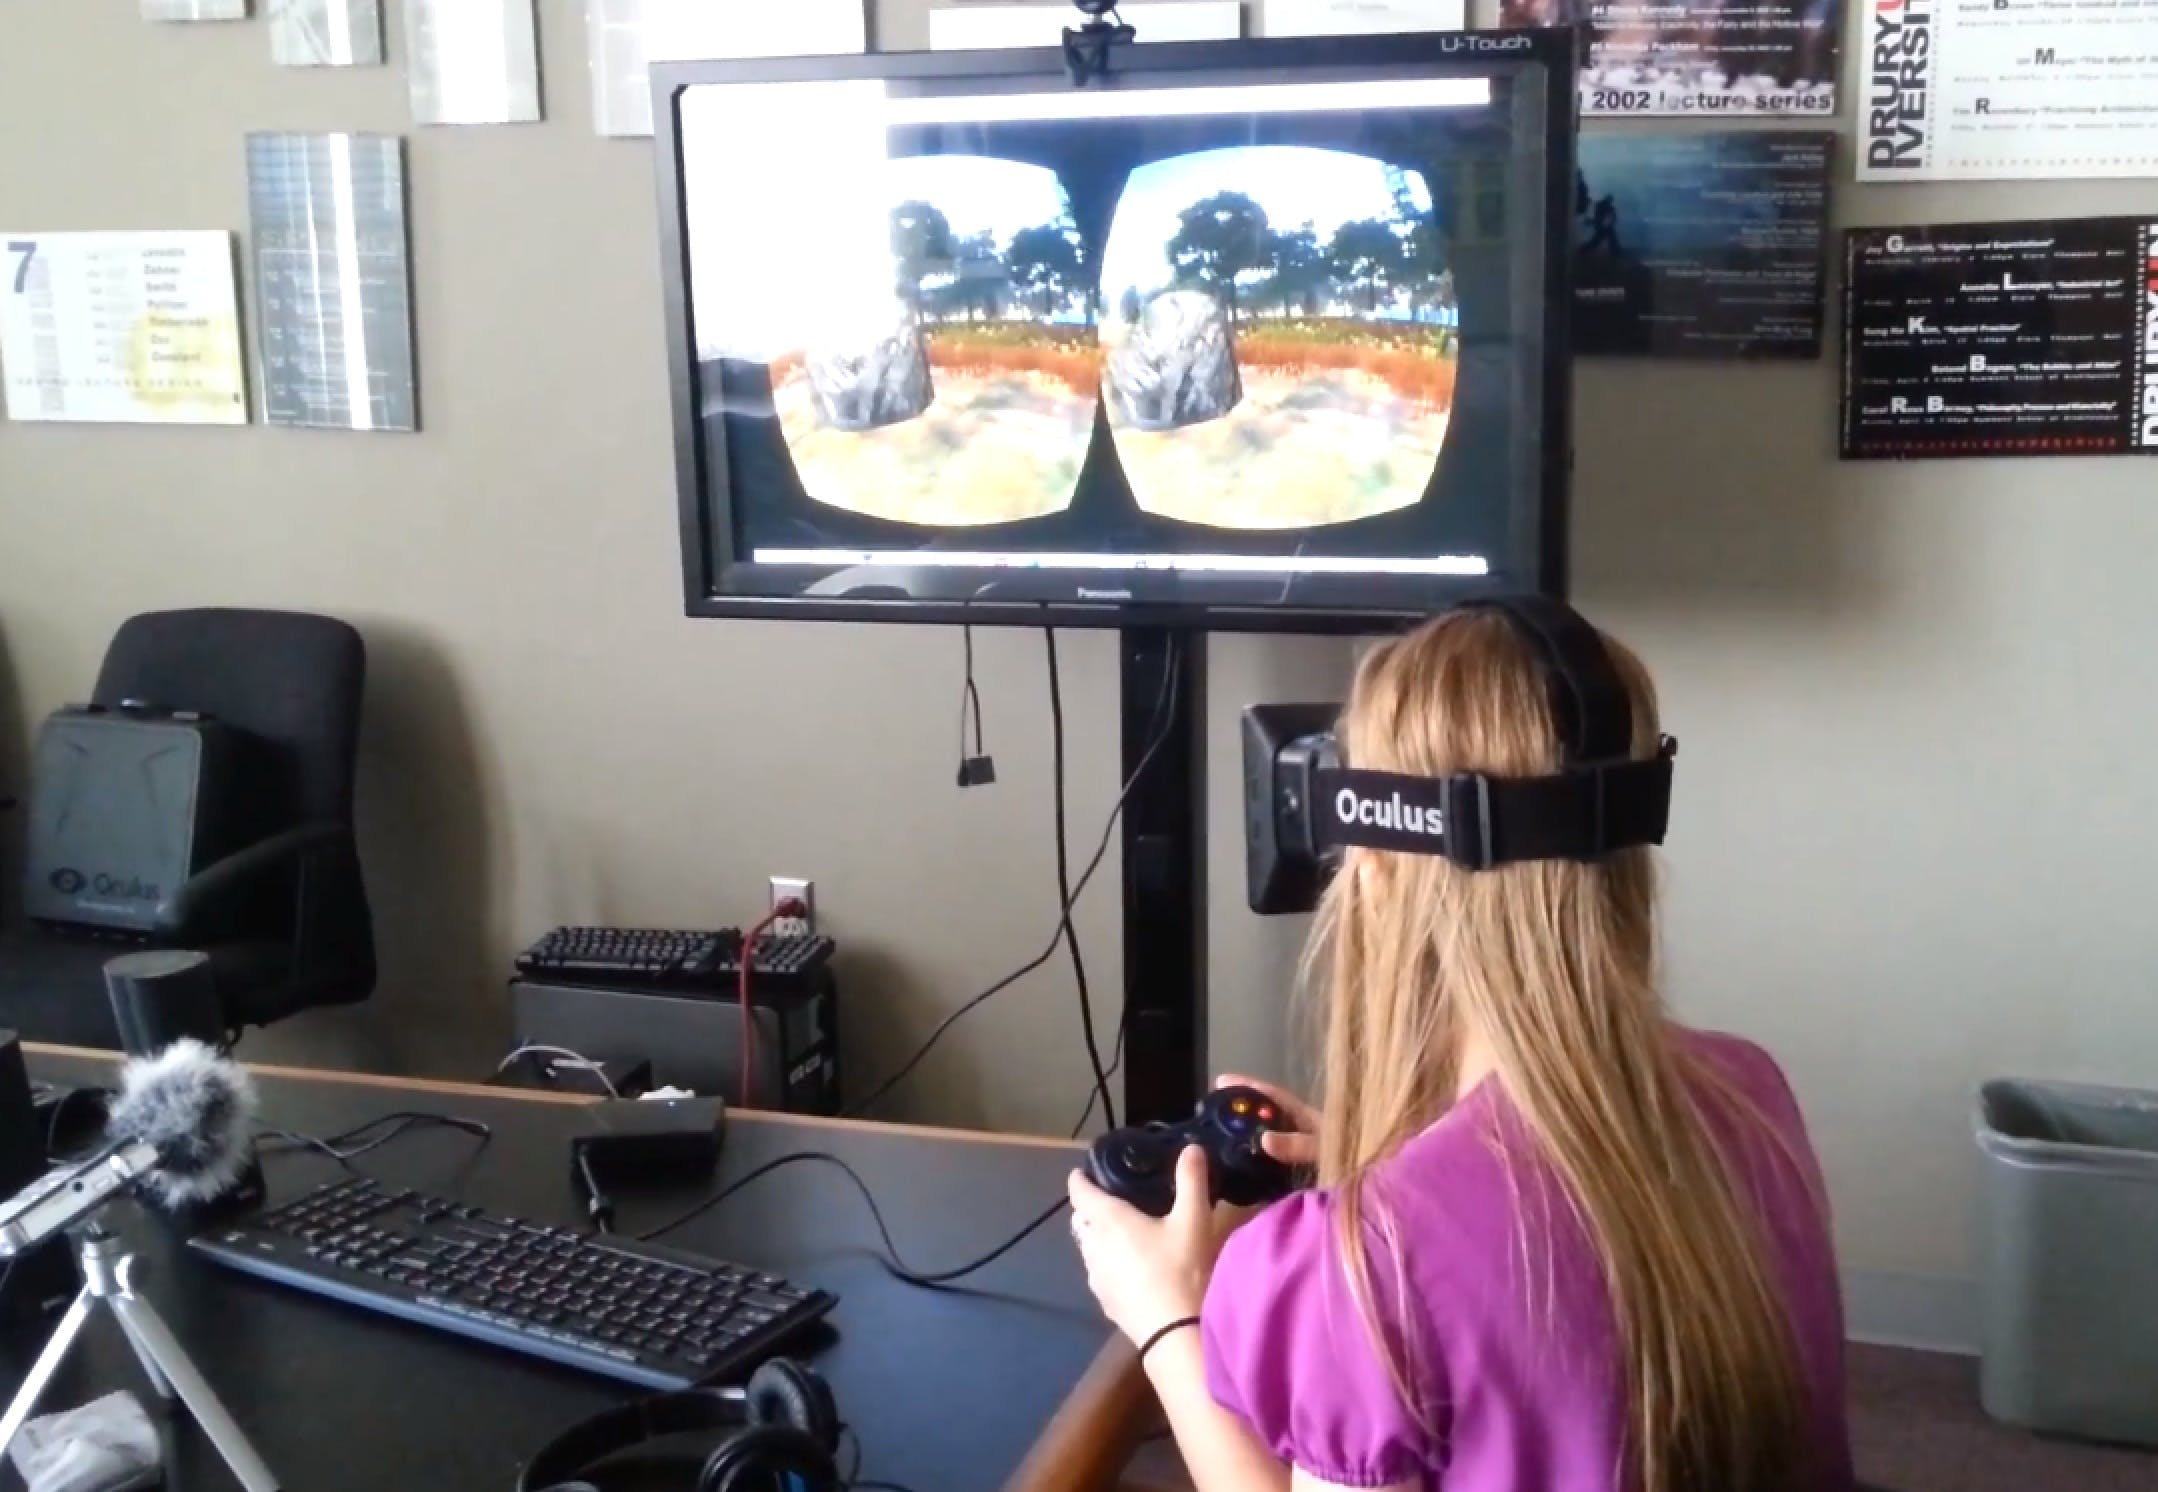 Drury architecture students are experimenting with virtual